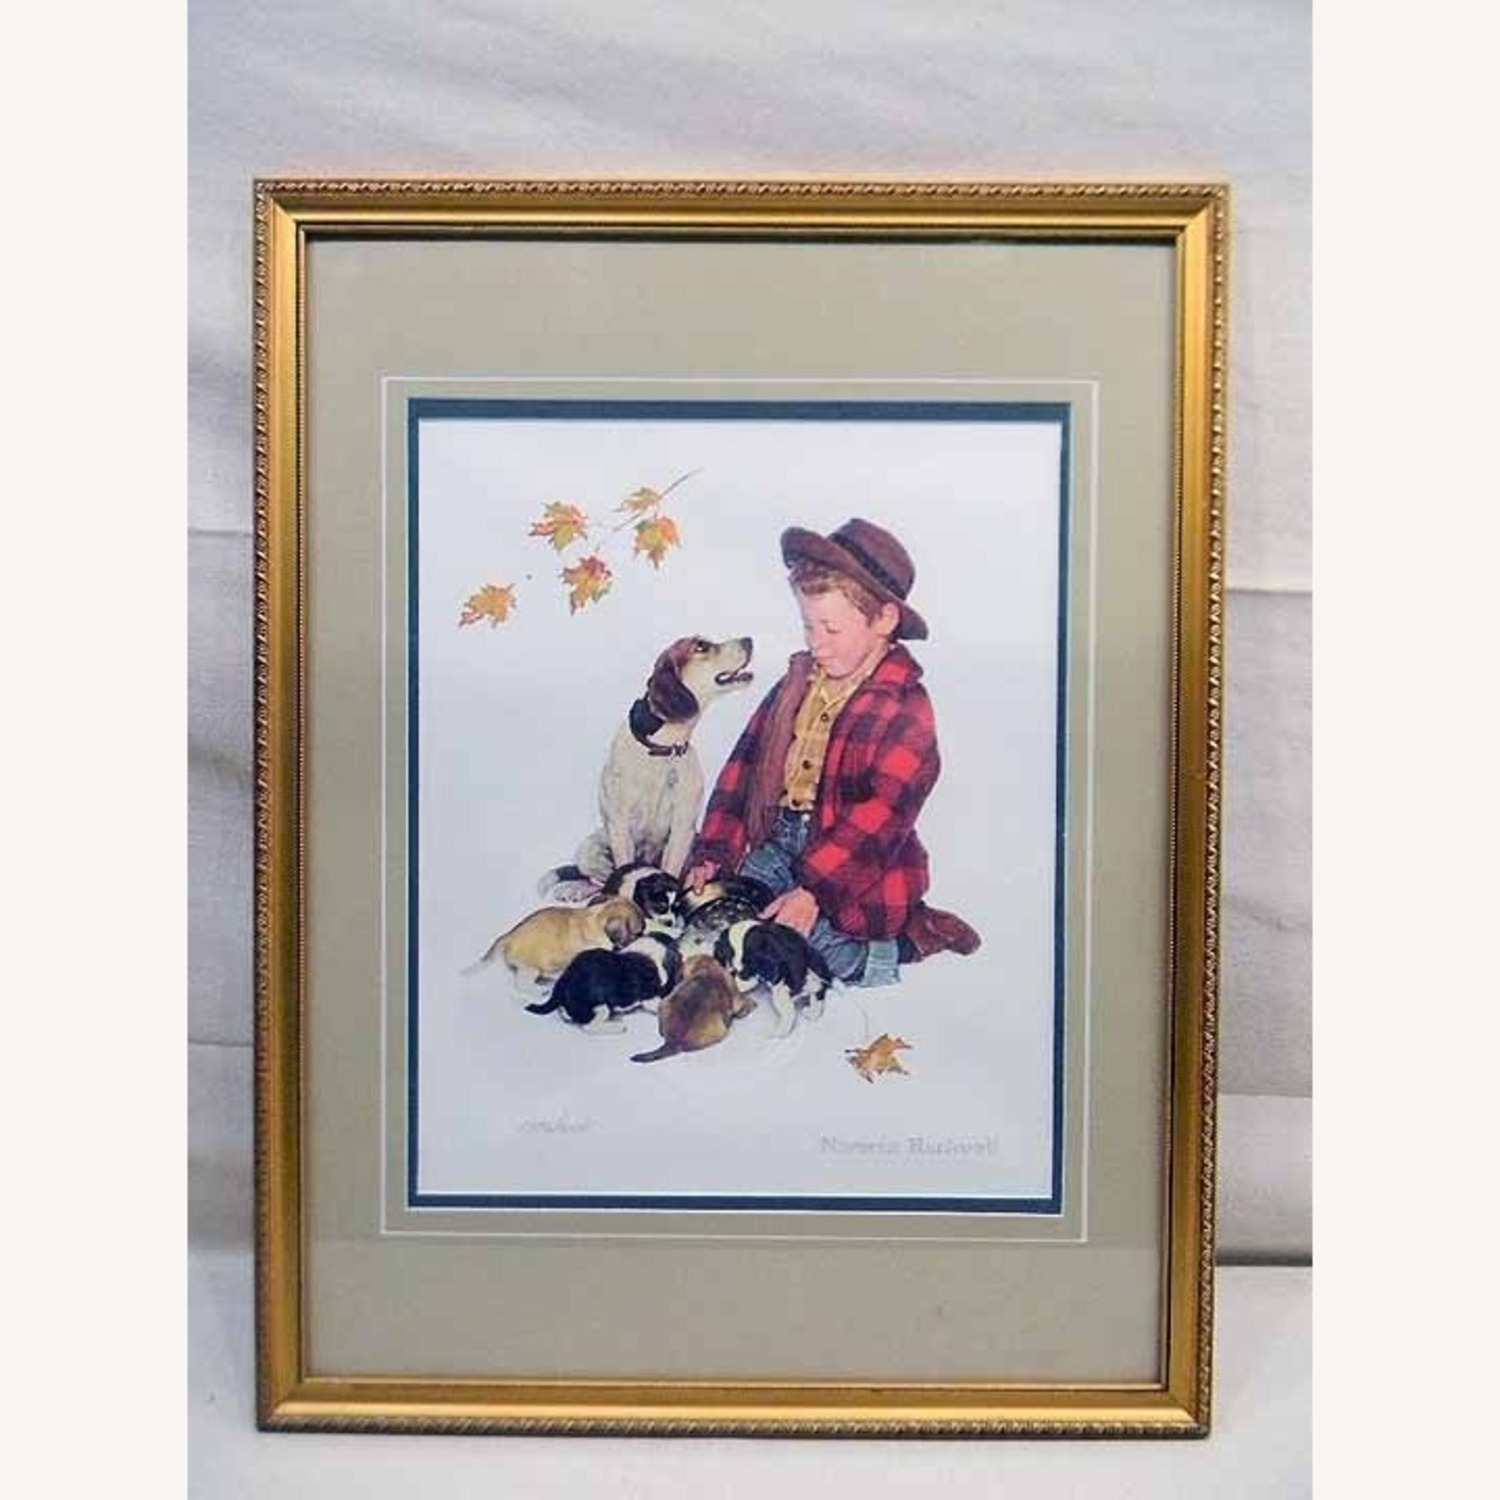 Puppy Love A Boy And His Dog Norman Rockwell COA - image-1